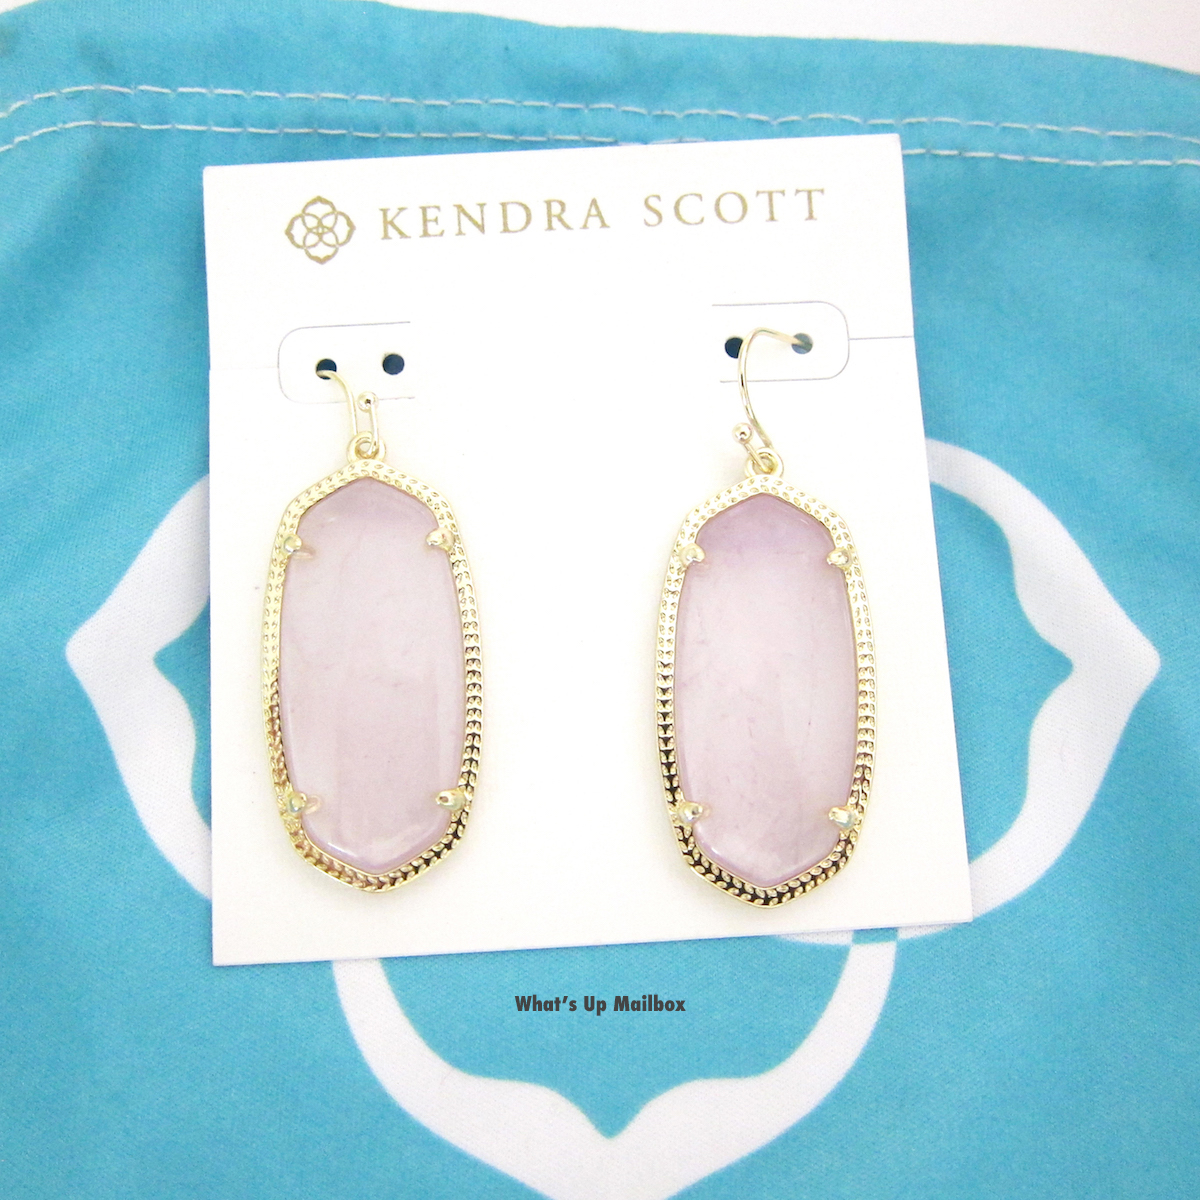 Kendra Scott Elle Earrings in Amethyst